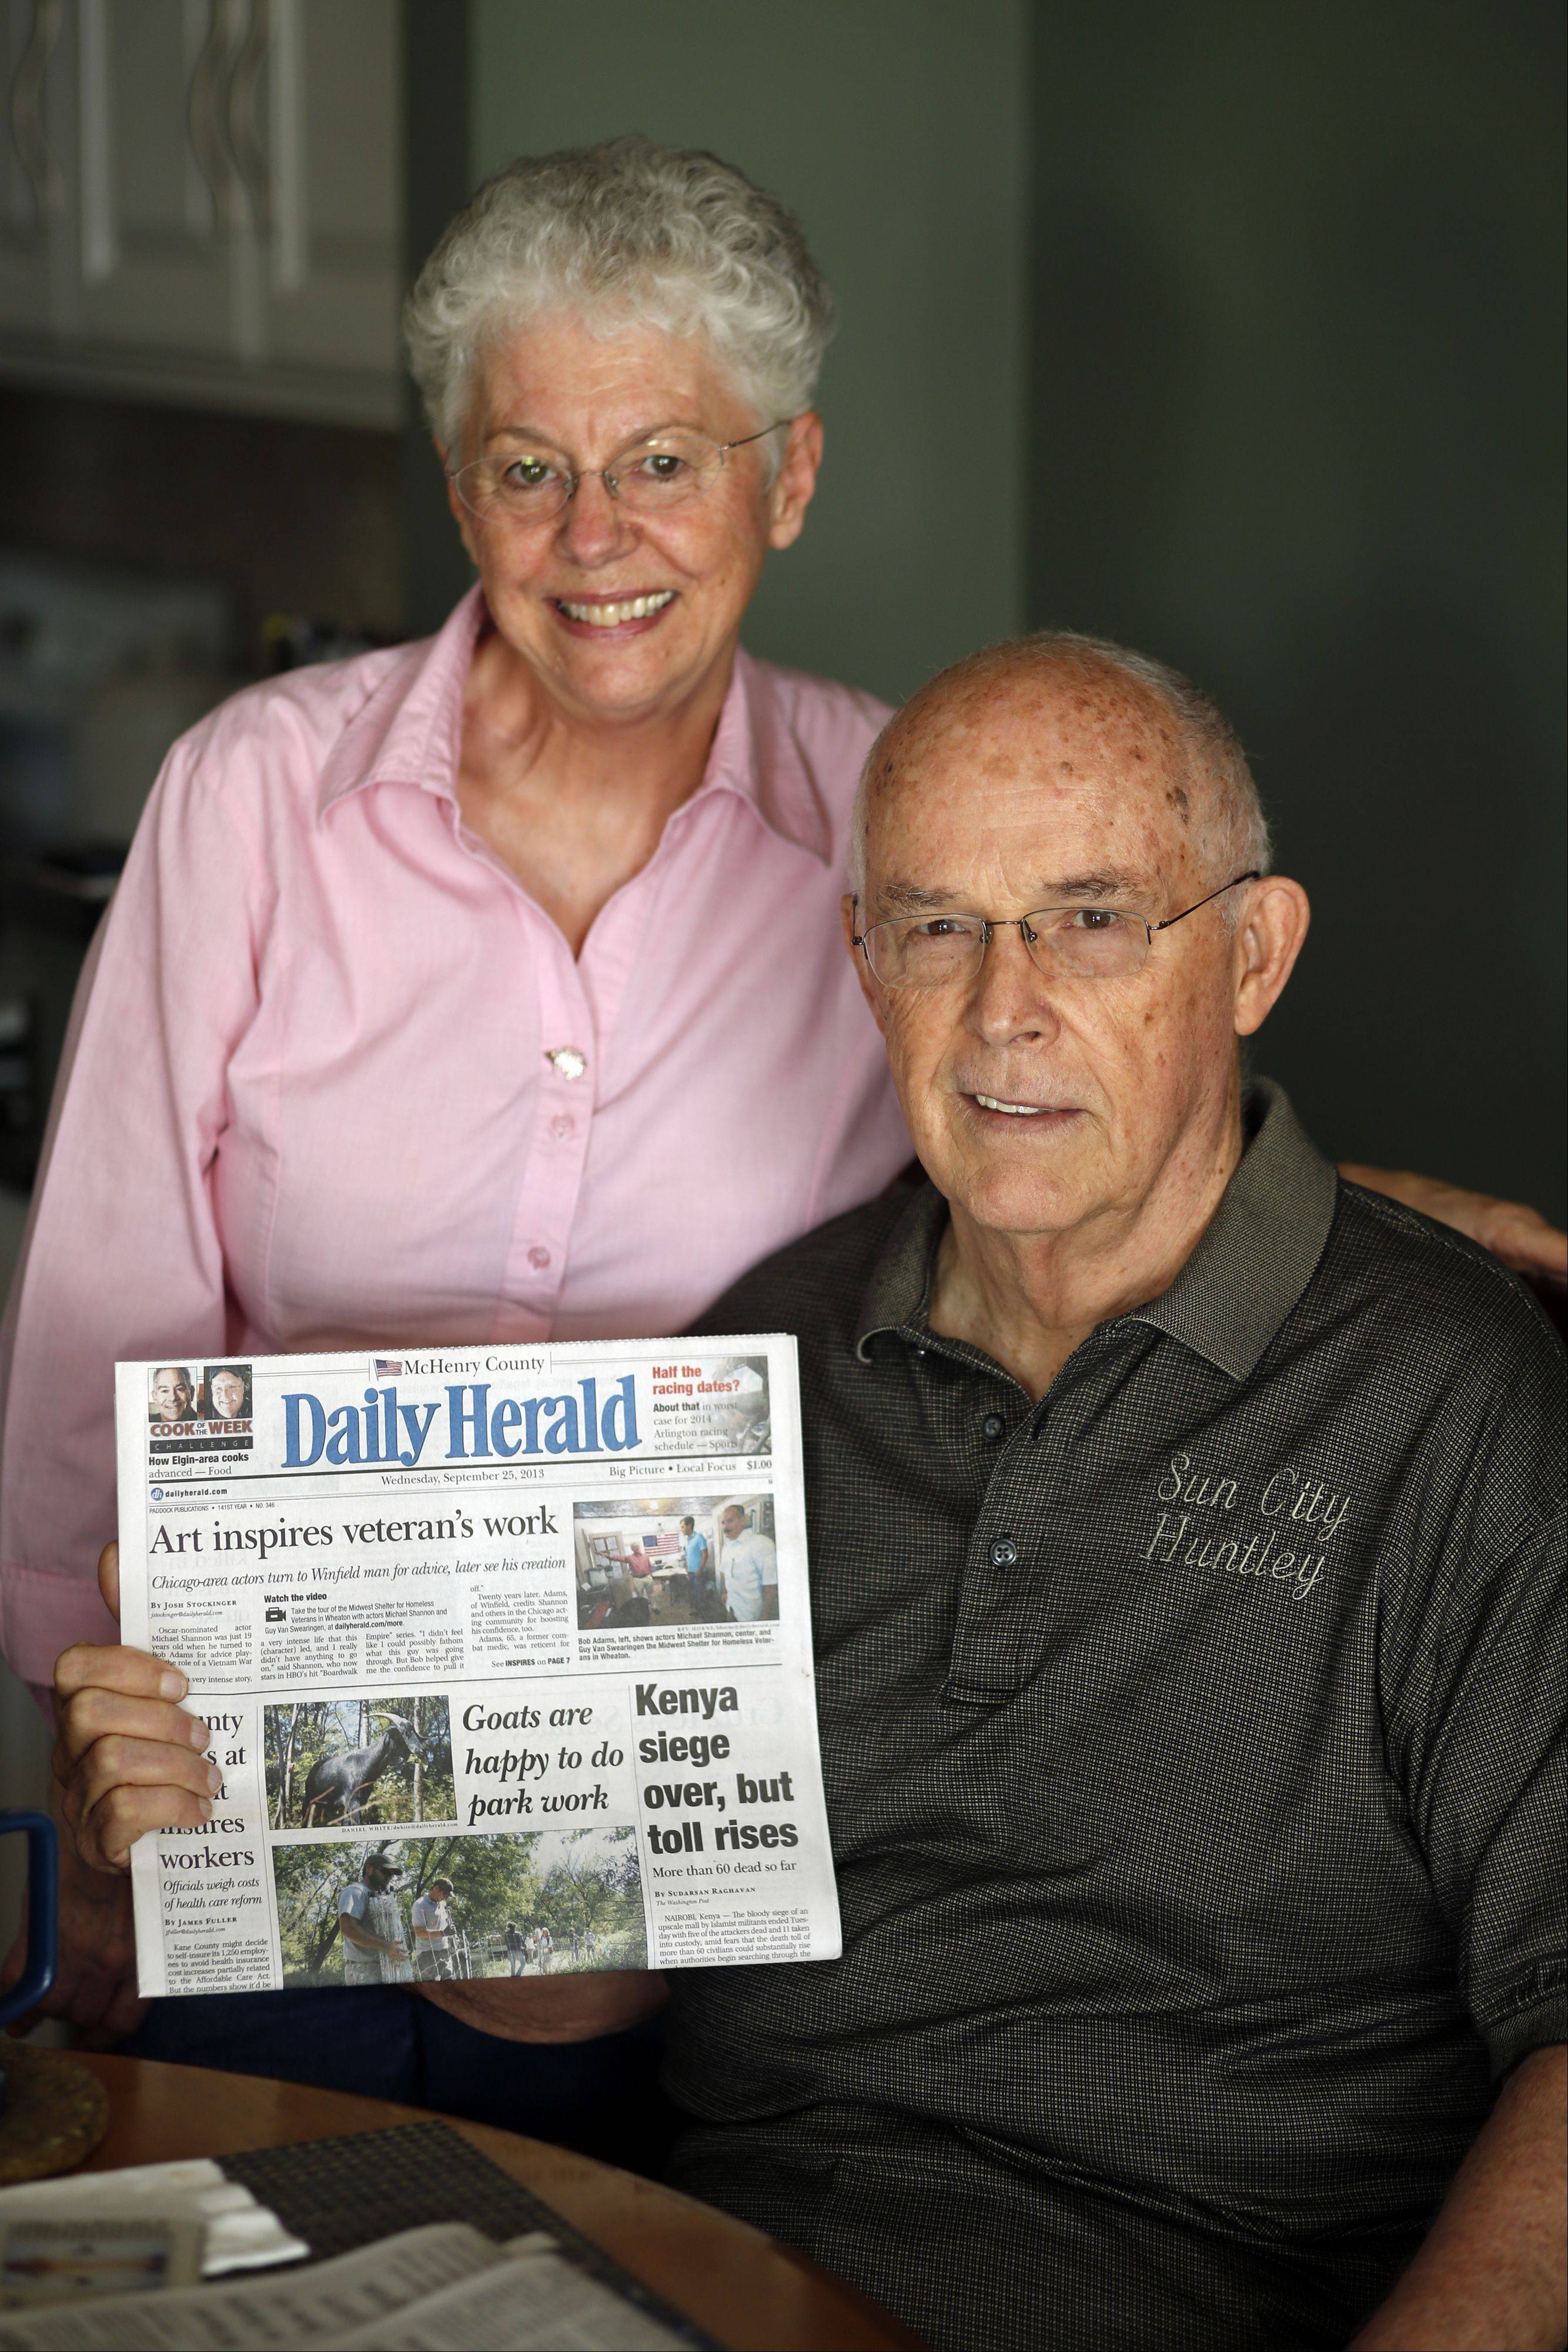 Brian Hill/bhill@dailyherald.comJames and Gloria Lunn, of Huntley, with their Daily Herald.